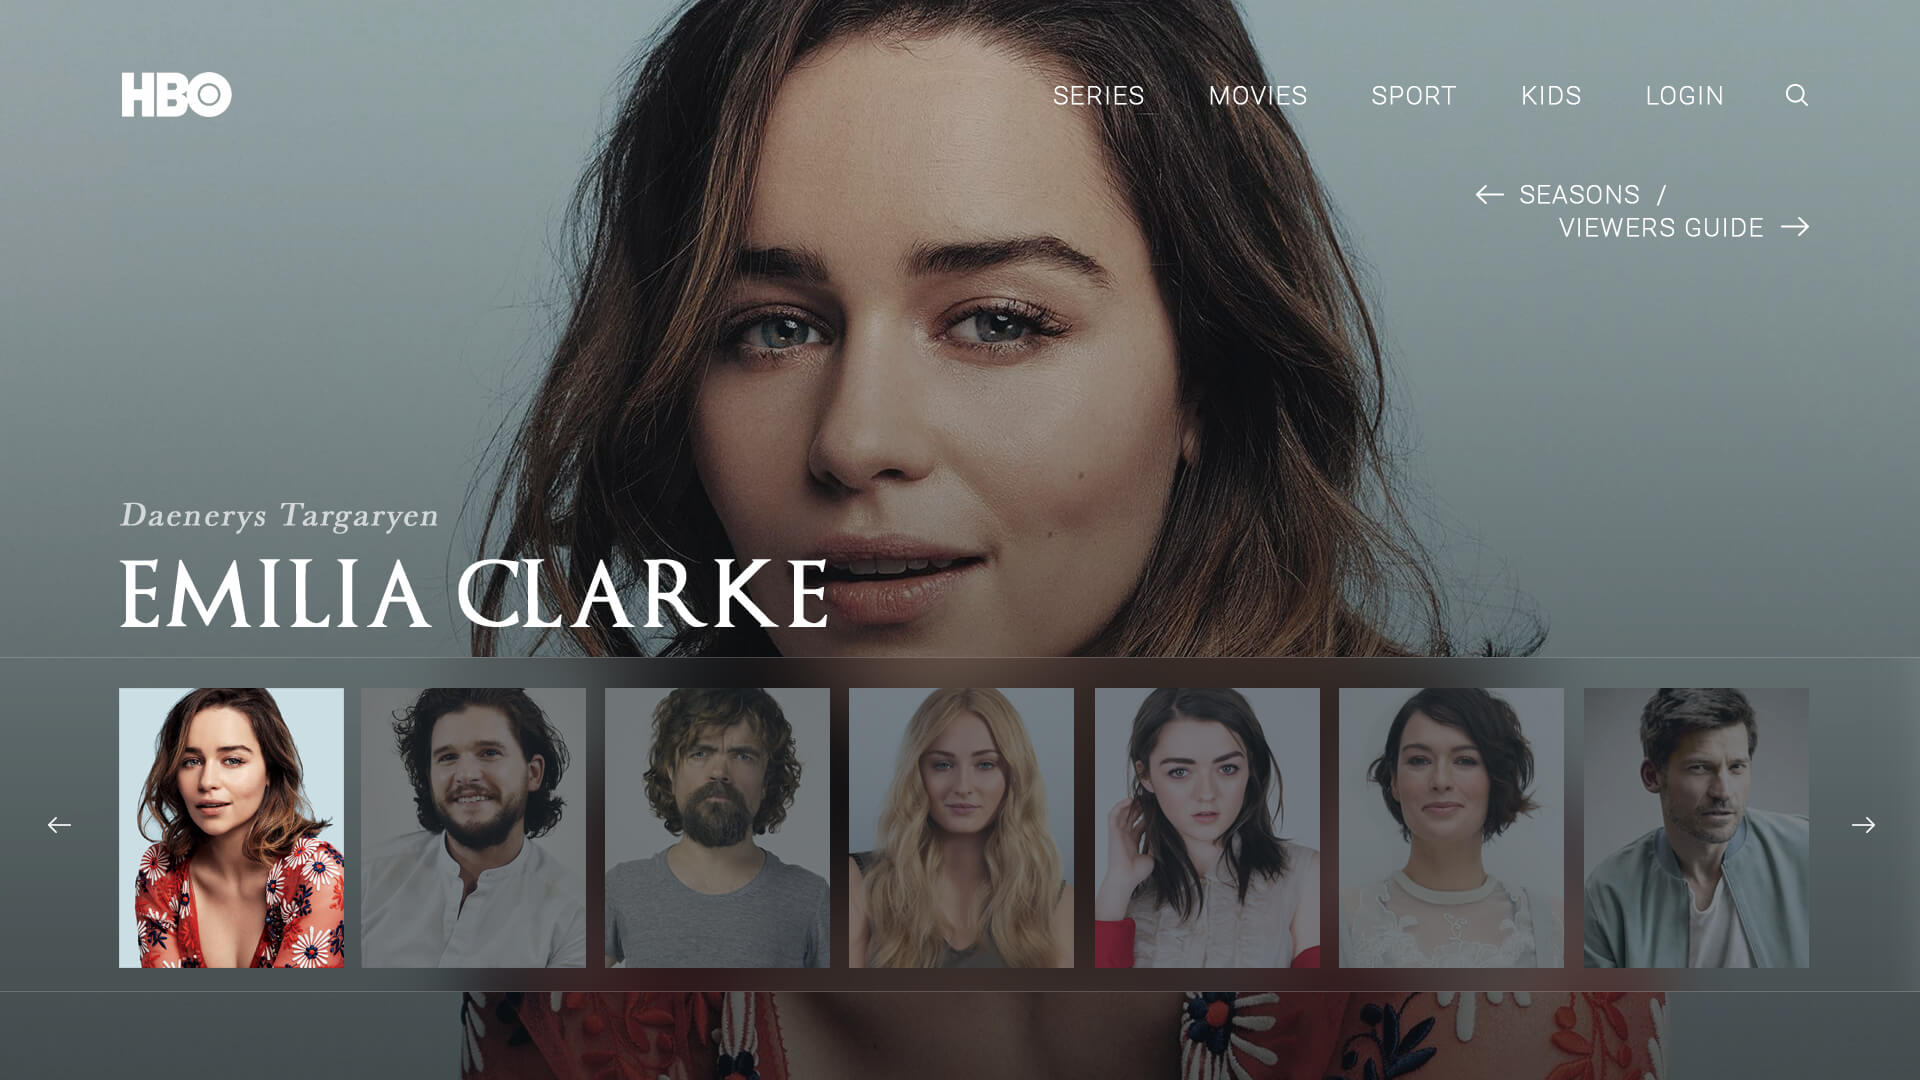 HBO Game of Thrones Web Design - by Ben Scales